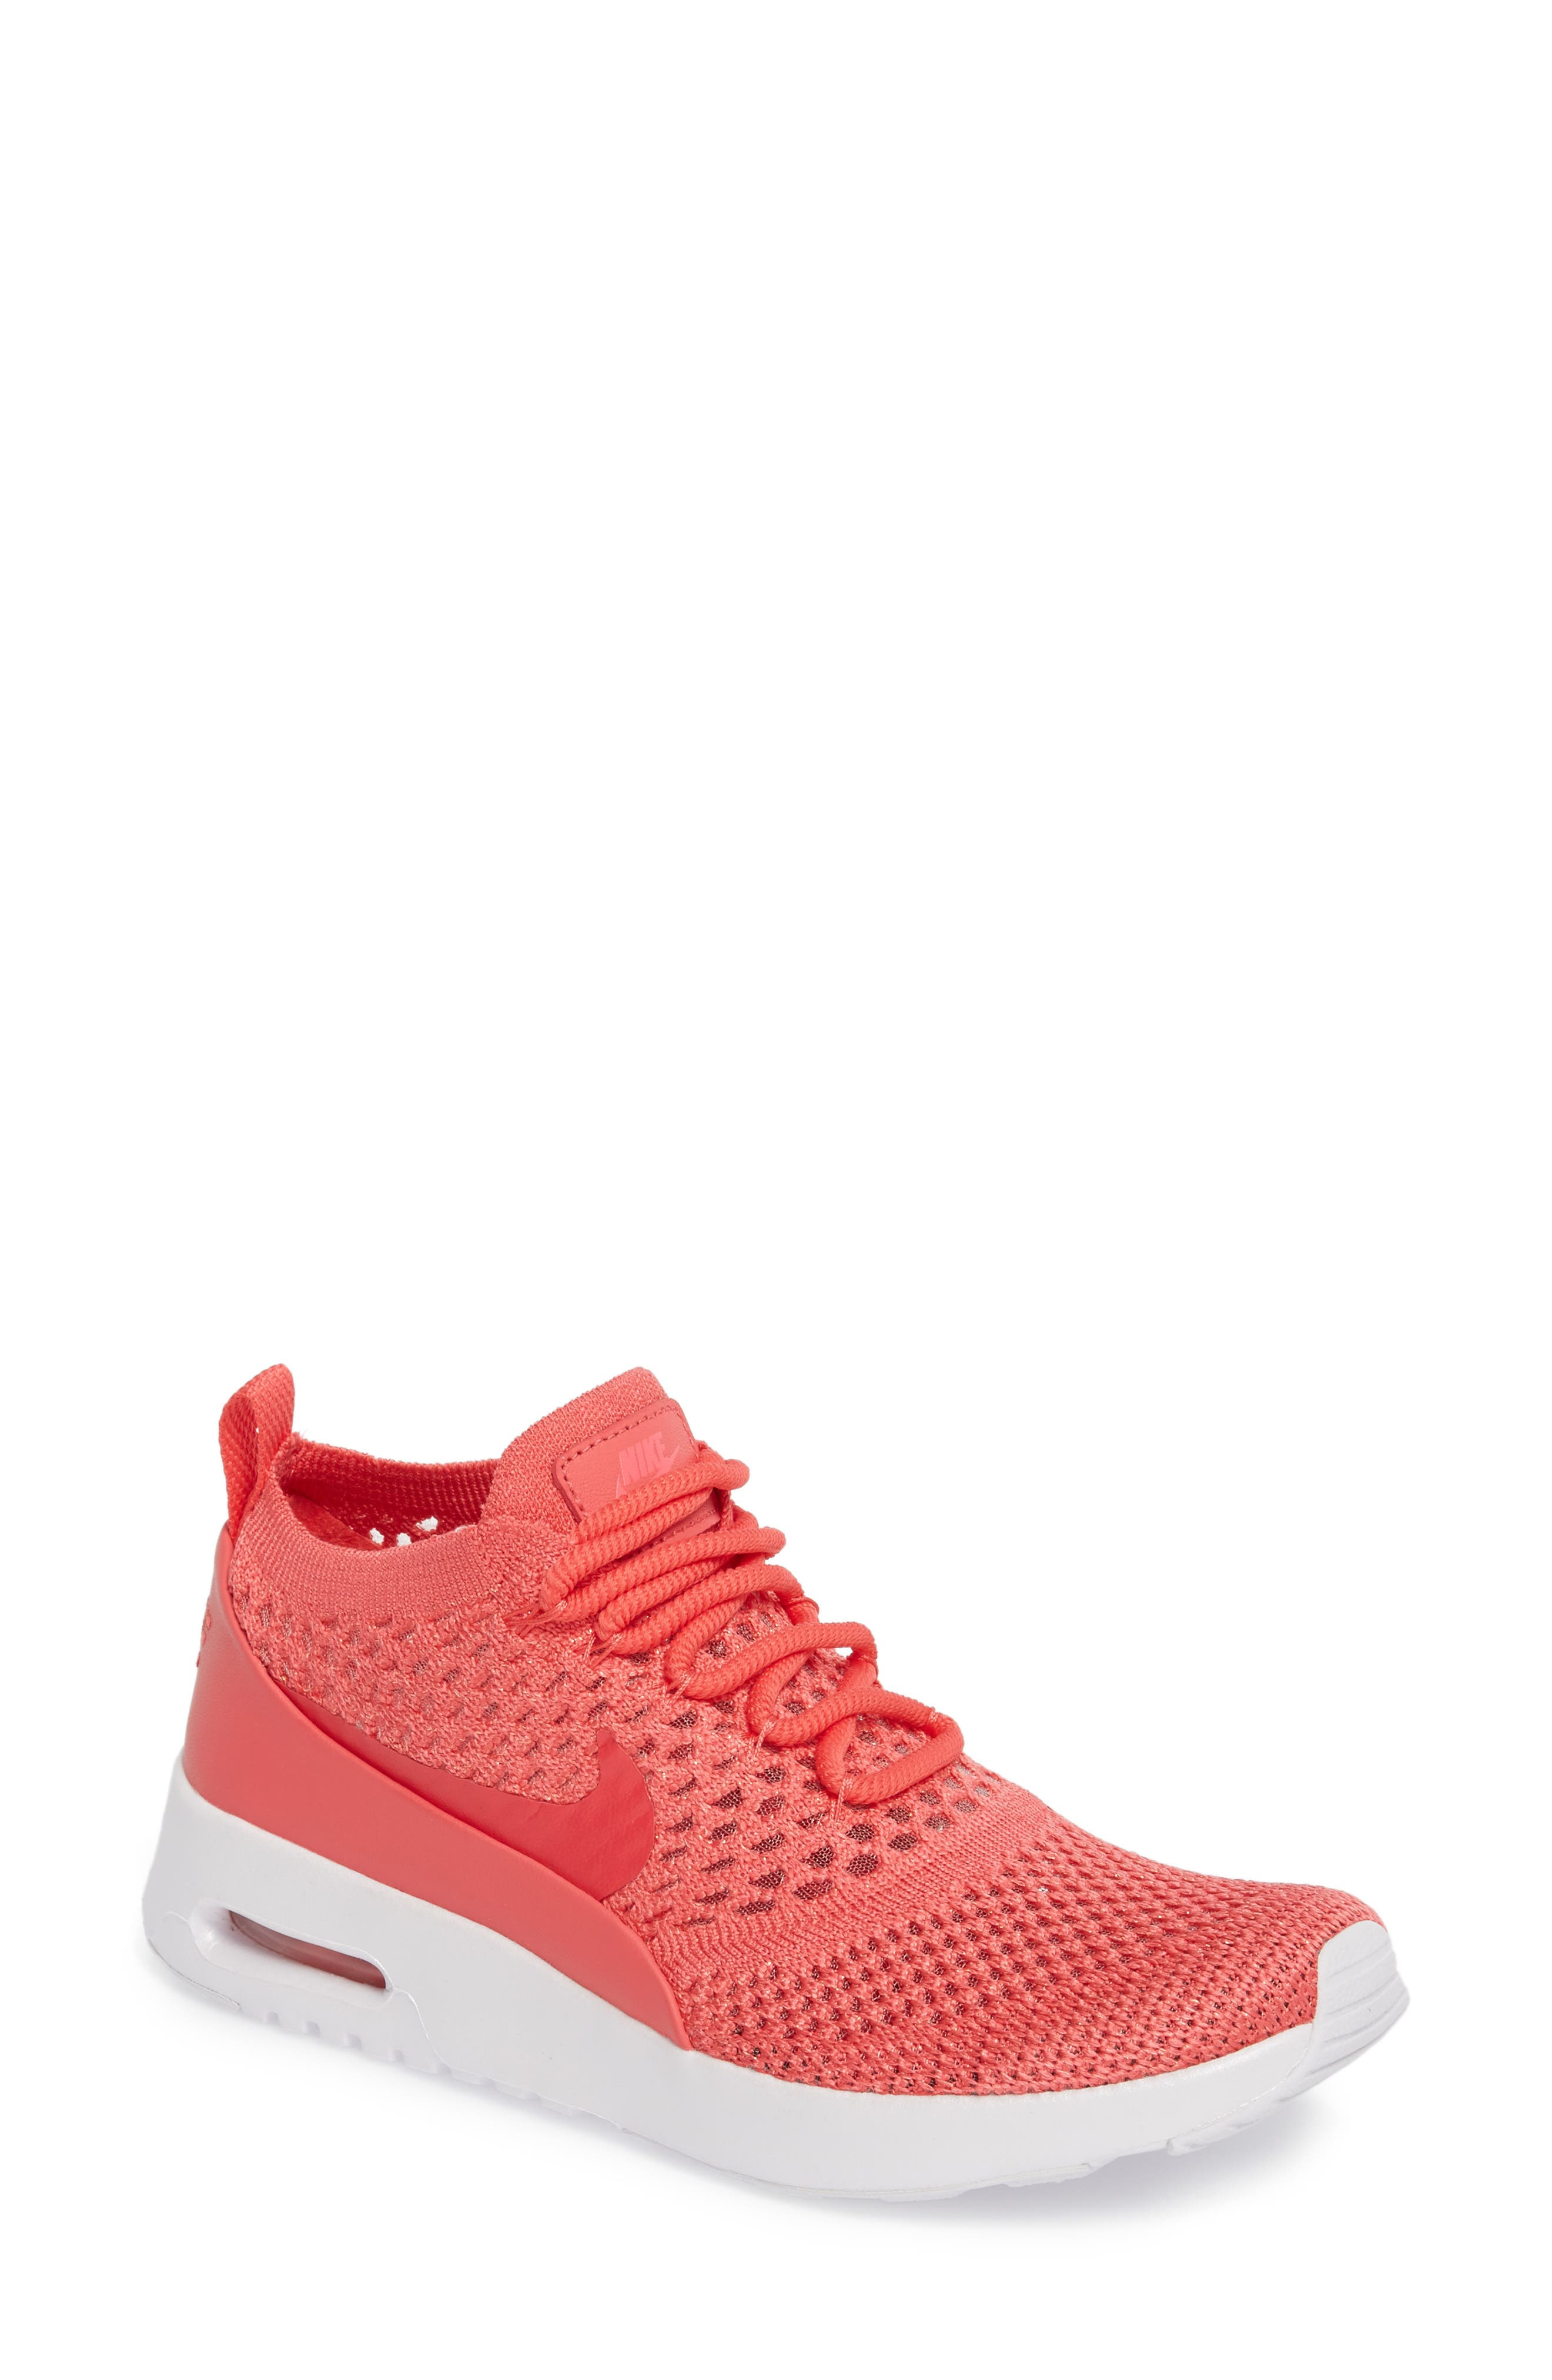 Women'S Air Max Thea Ultra Flyknit Lace Up Sneakers in Geranium Geranium